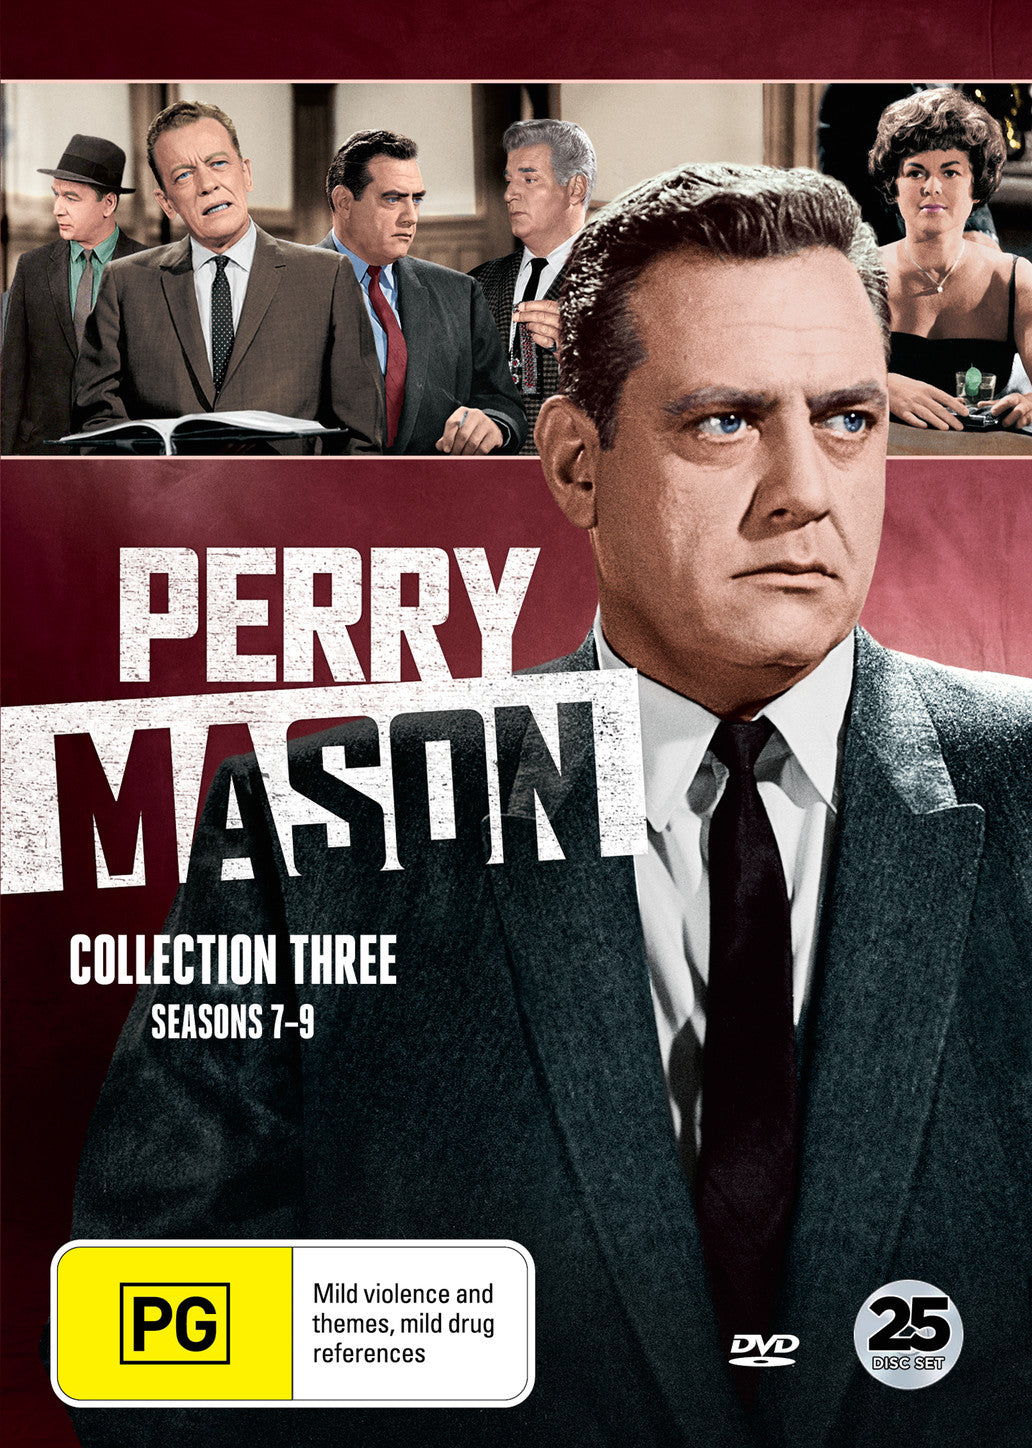 Perry Mason - Collection Three (Season 7-9)